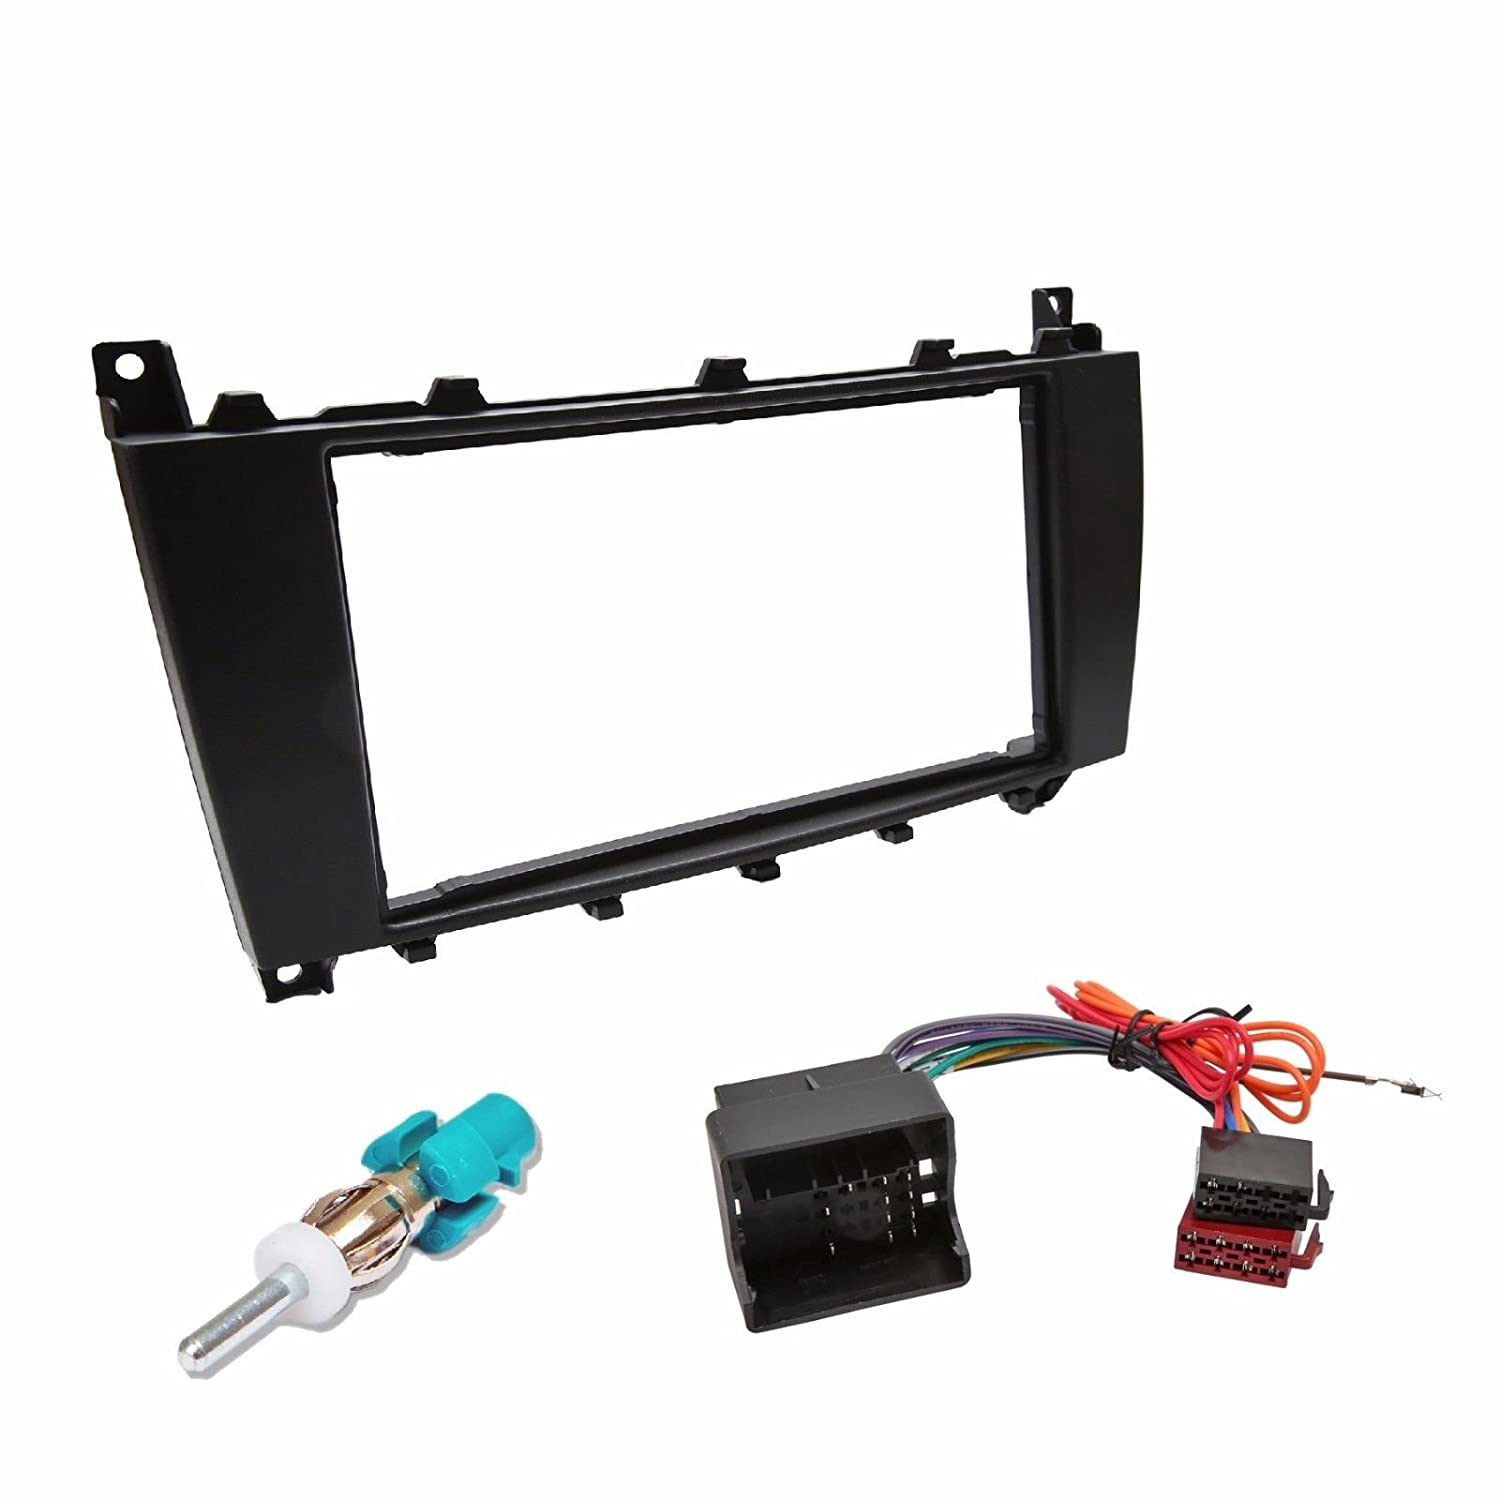 Inex Mercedes Double DIN Car CD Facia Fascia Fitting Kit Audio Stereo Adapter Plate